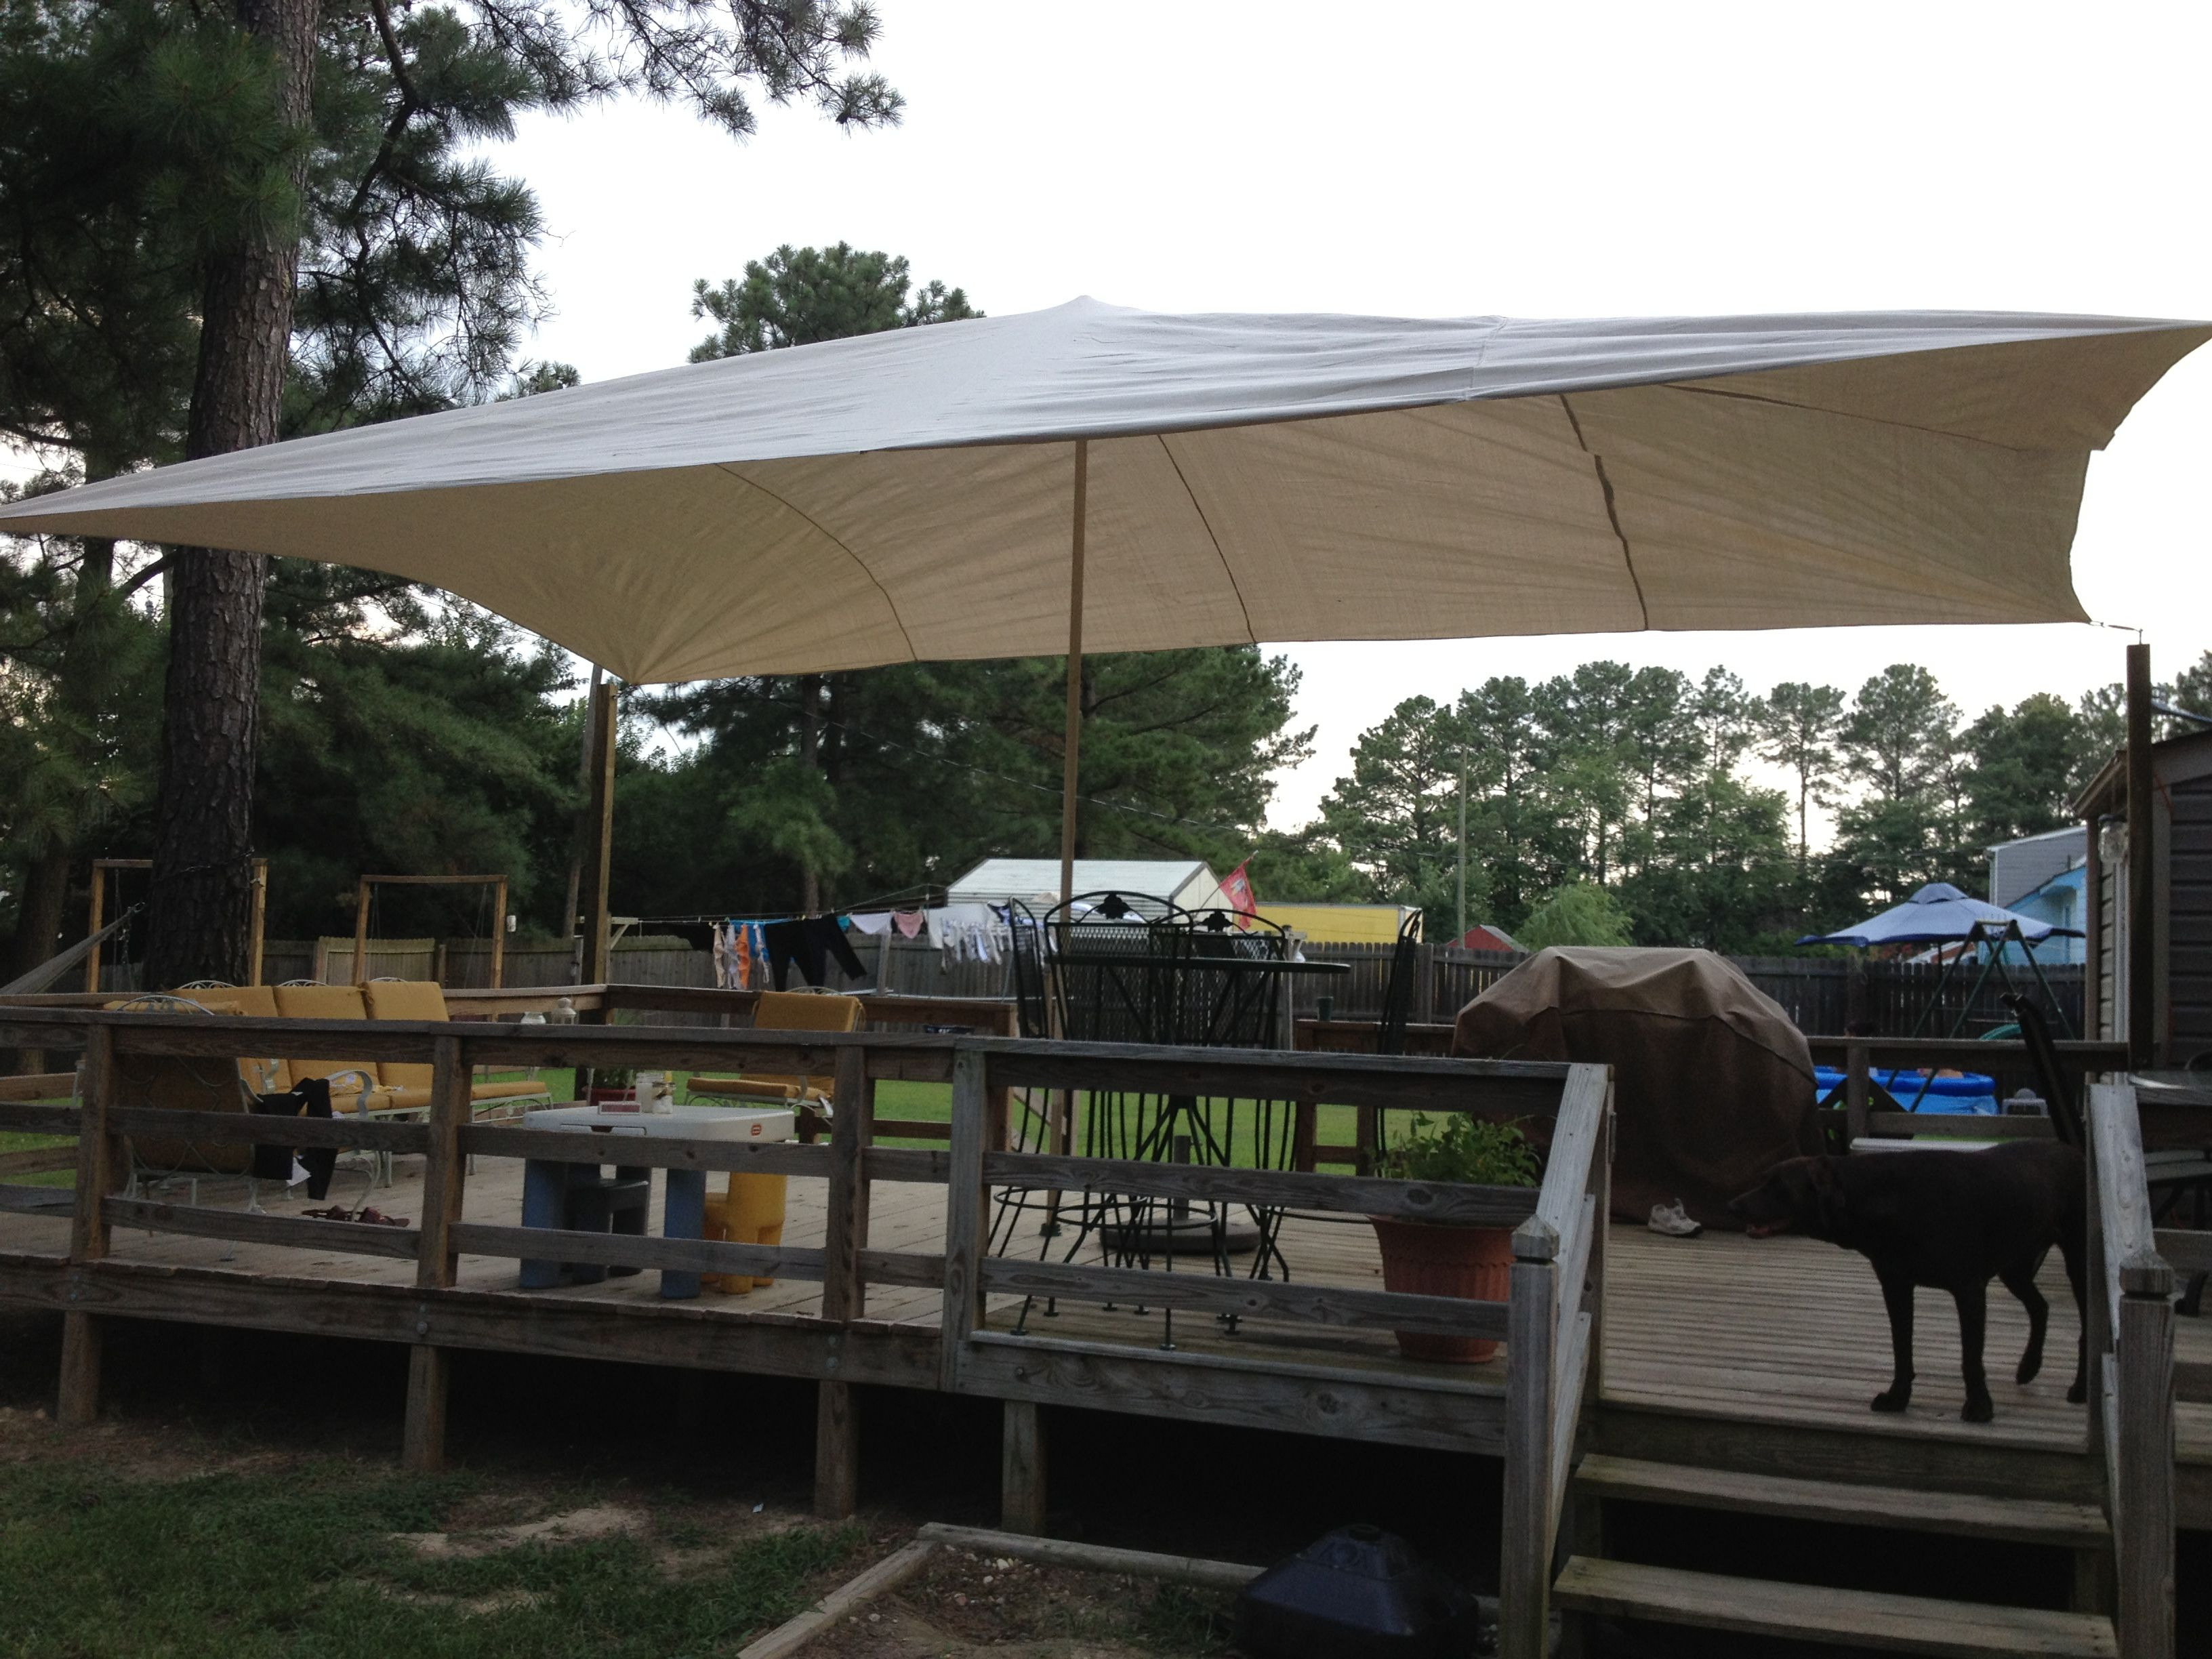 Diy Shade Sail Made From Canvas Drop Cloth Maybe Use Conduit As The Poles